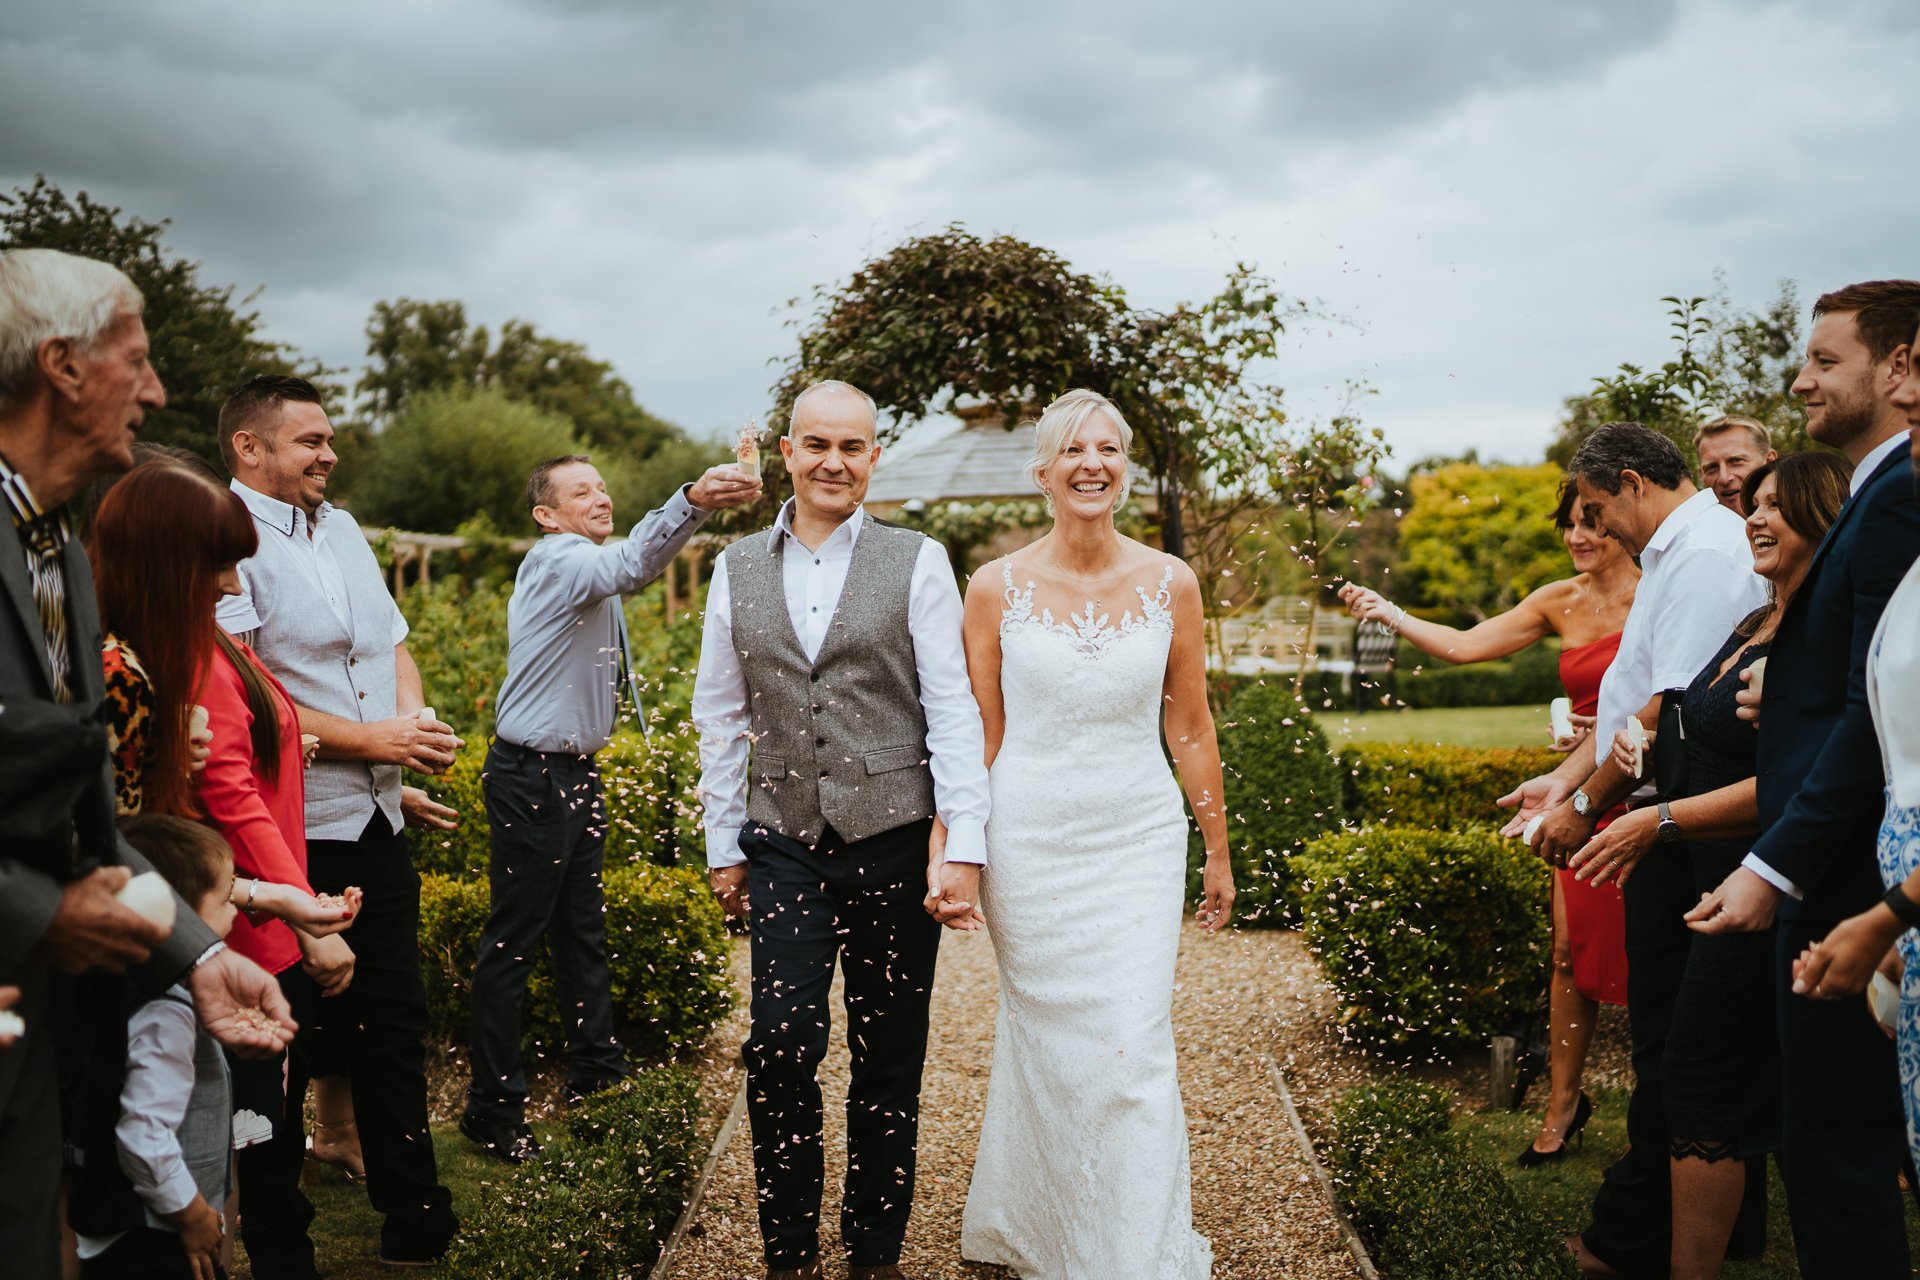 Bride and Groom showered with confetti during their Secret Garden wedding